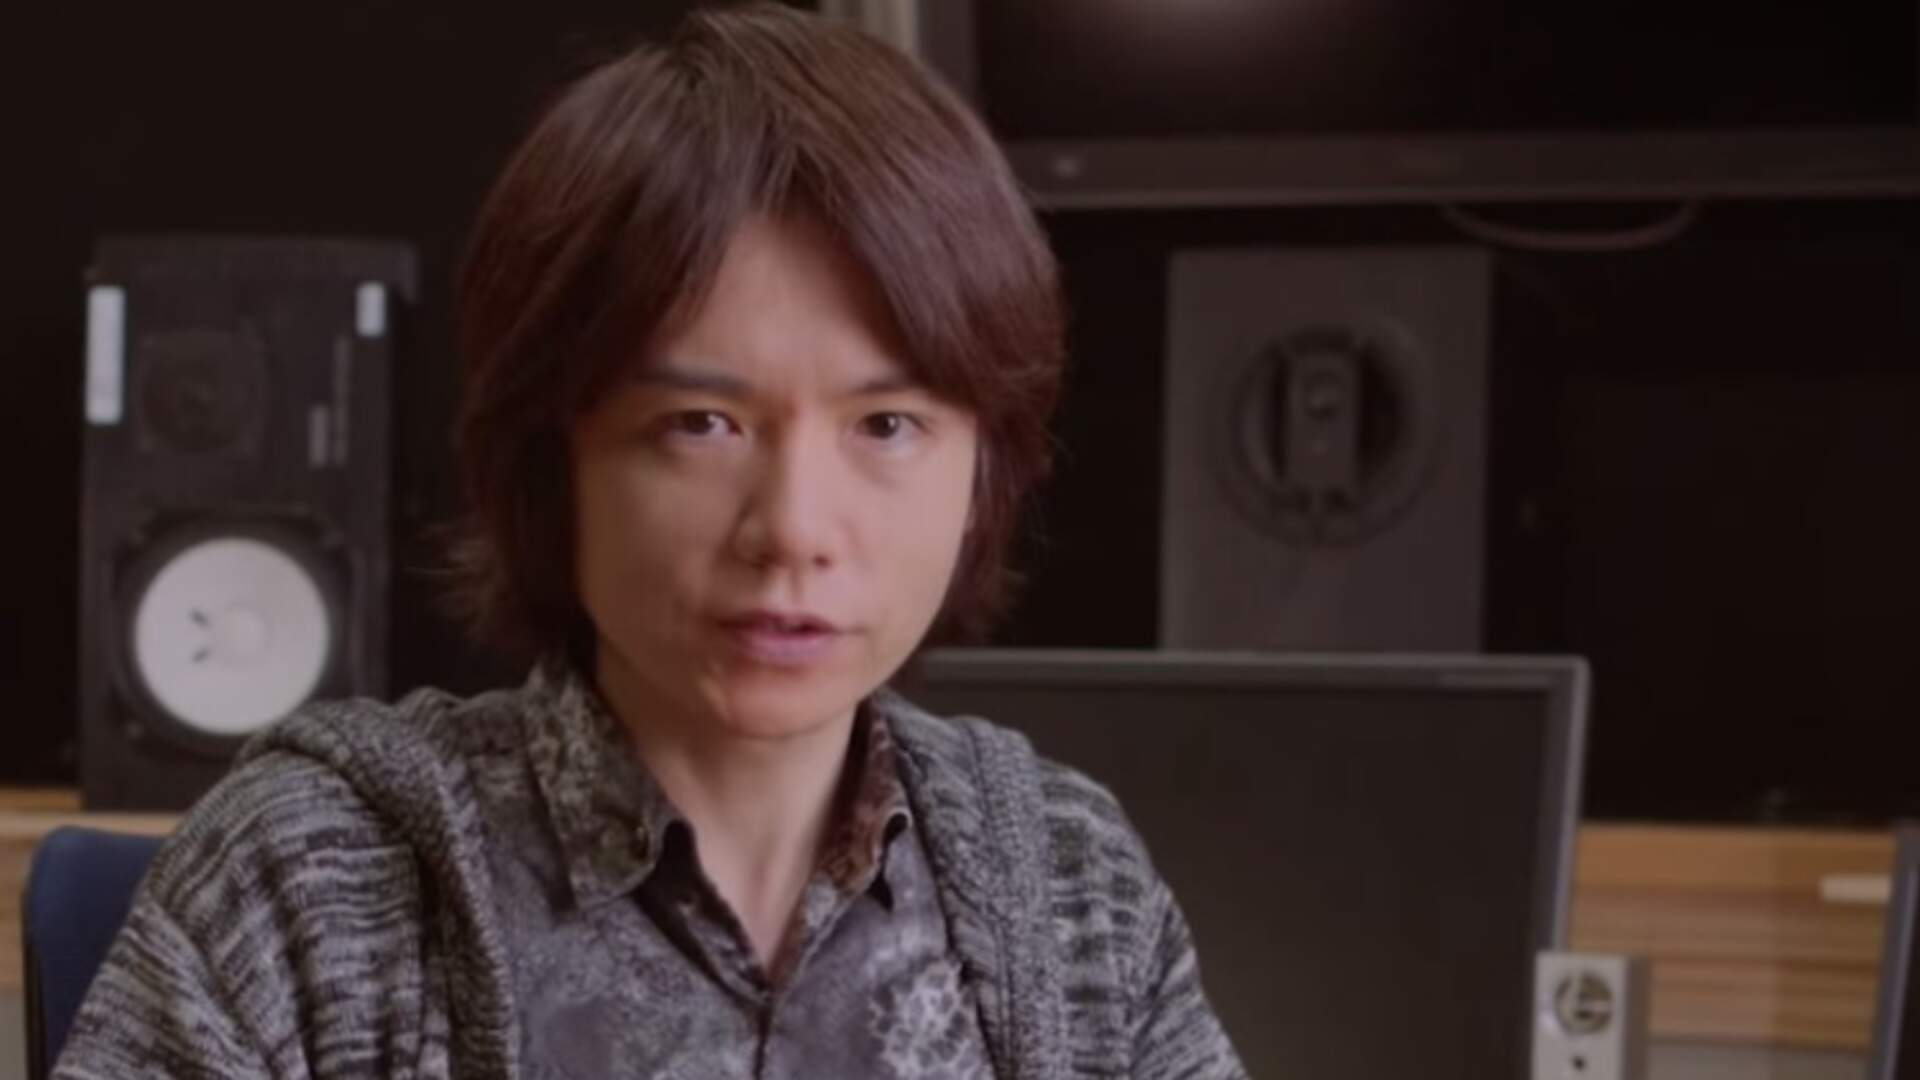 Masahiro Sakurai is Working on Smash Bros Switch in an Unspecified Role